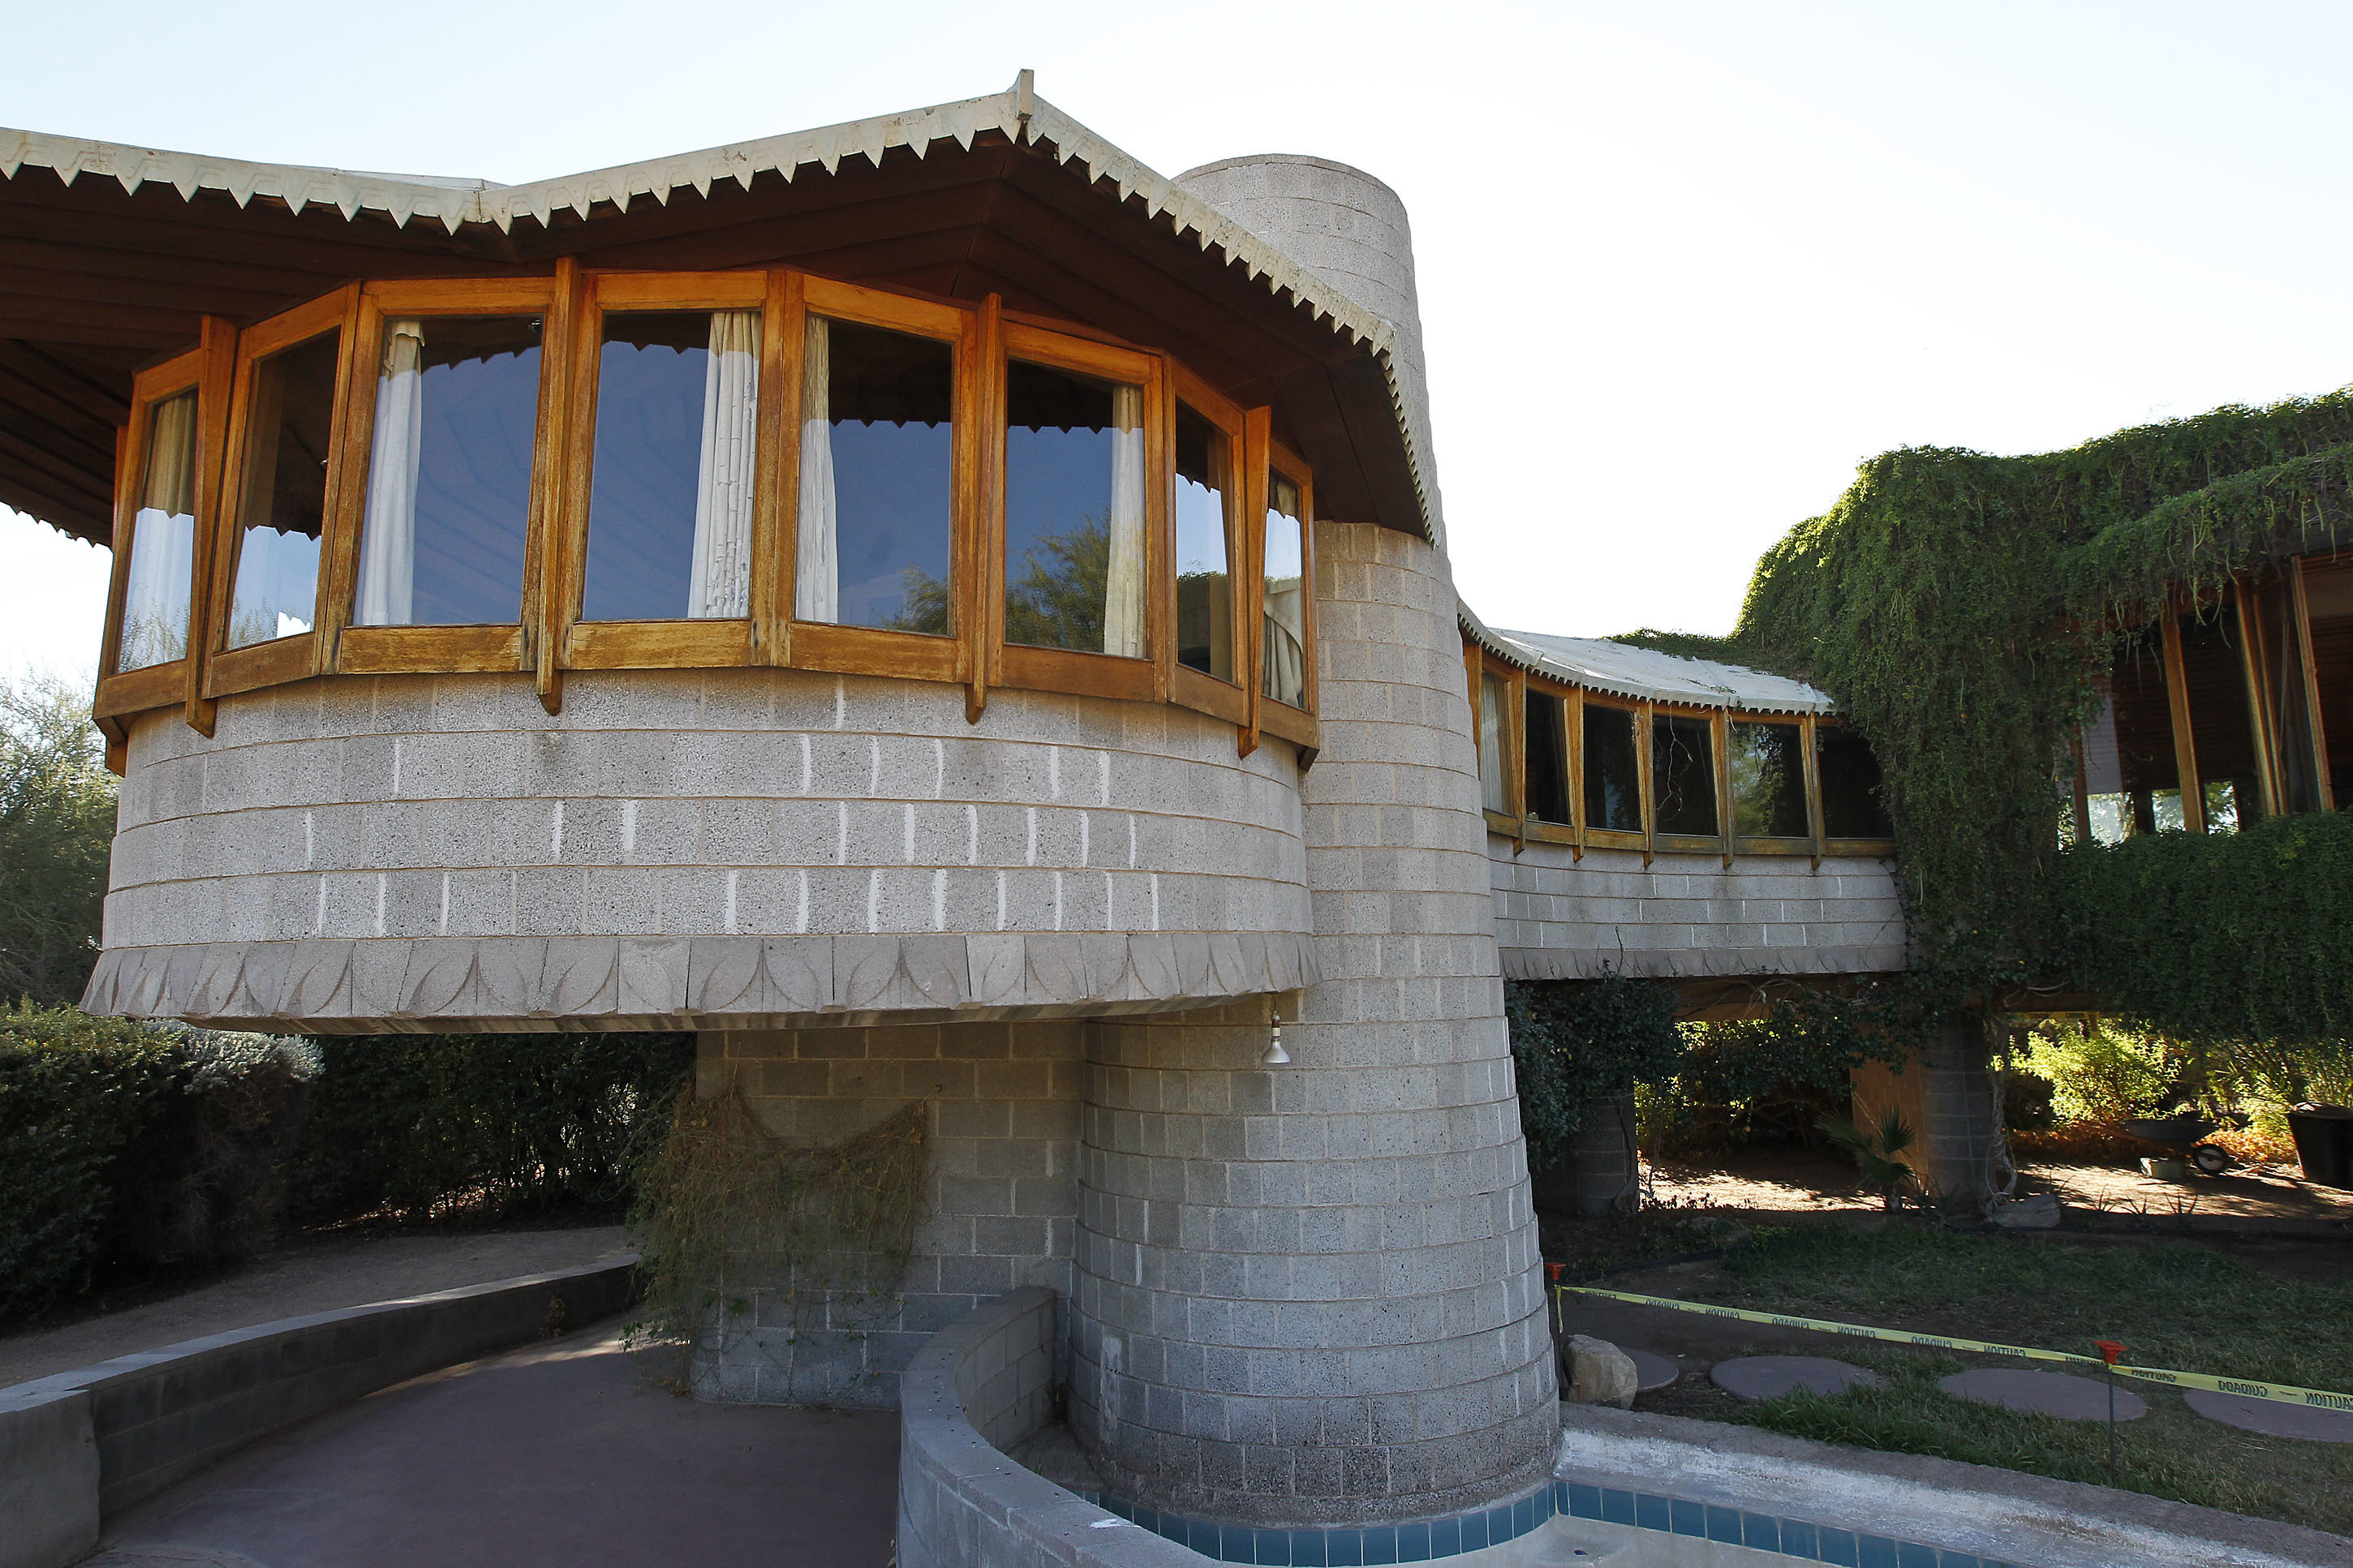 Frank Lloyd Wright Phoenix home given to architecture